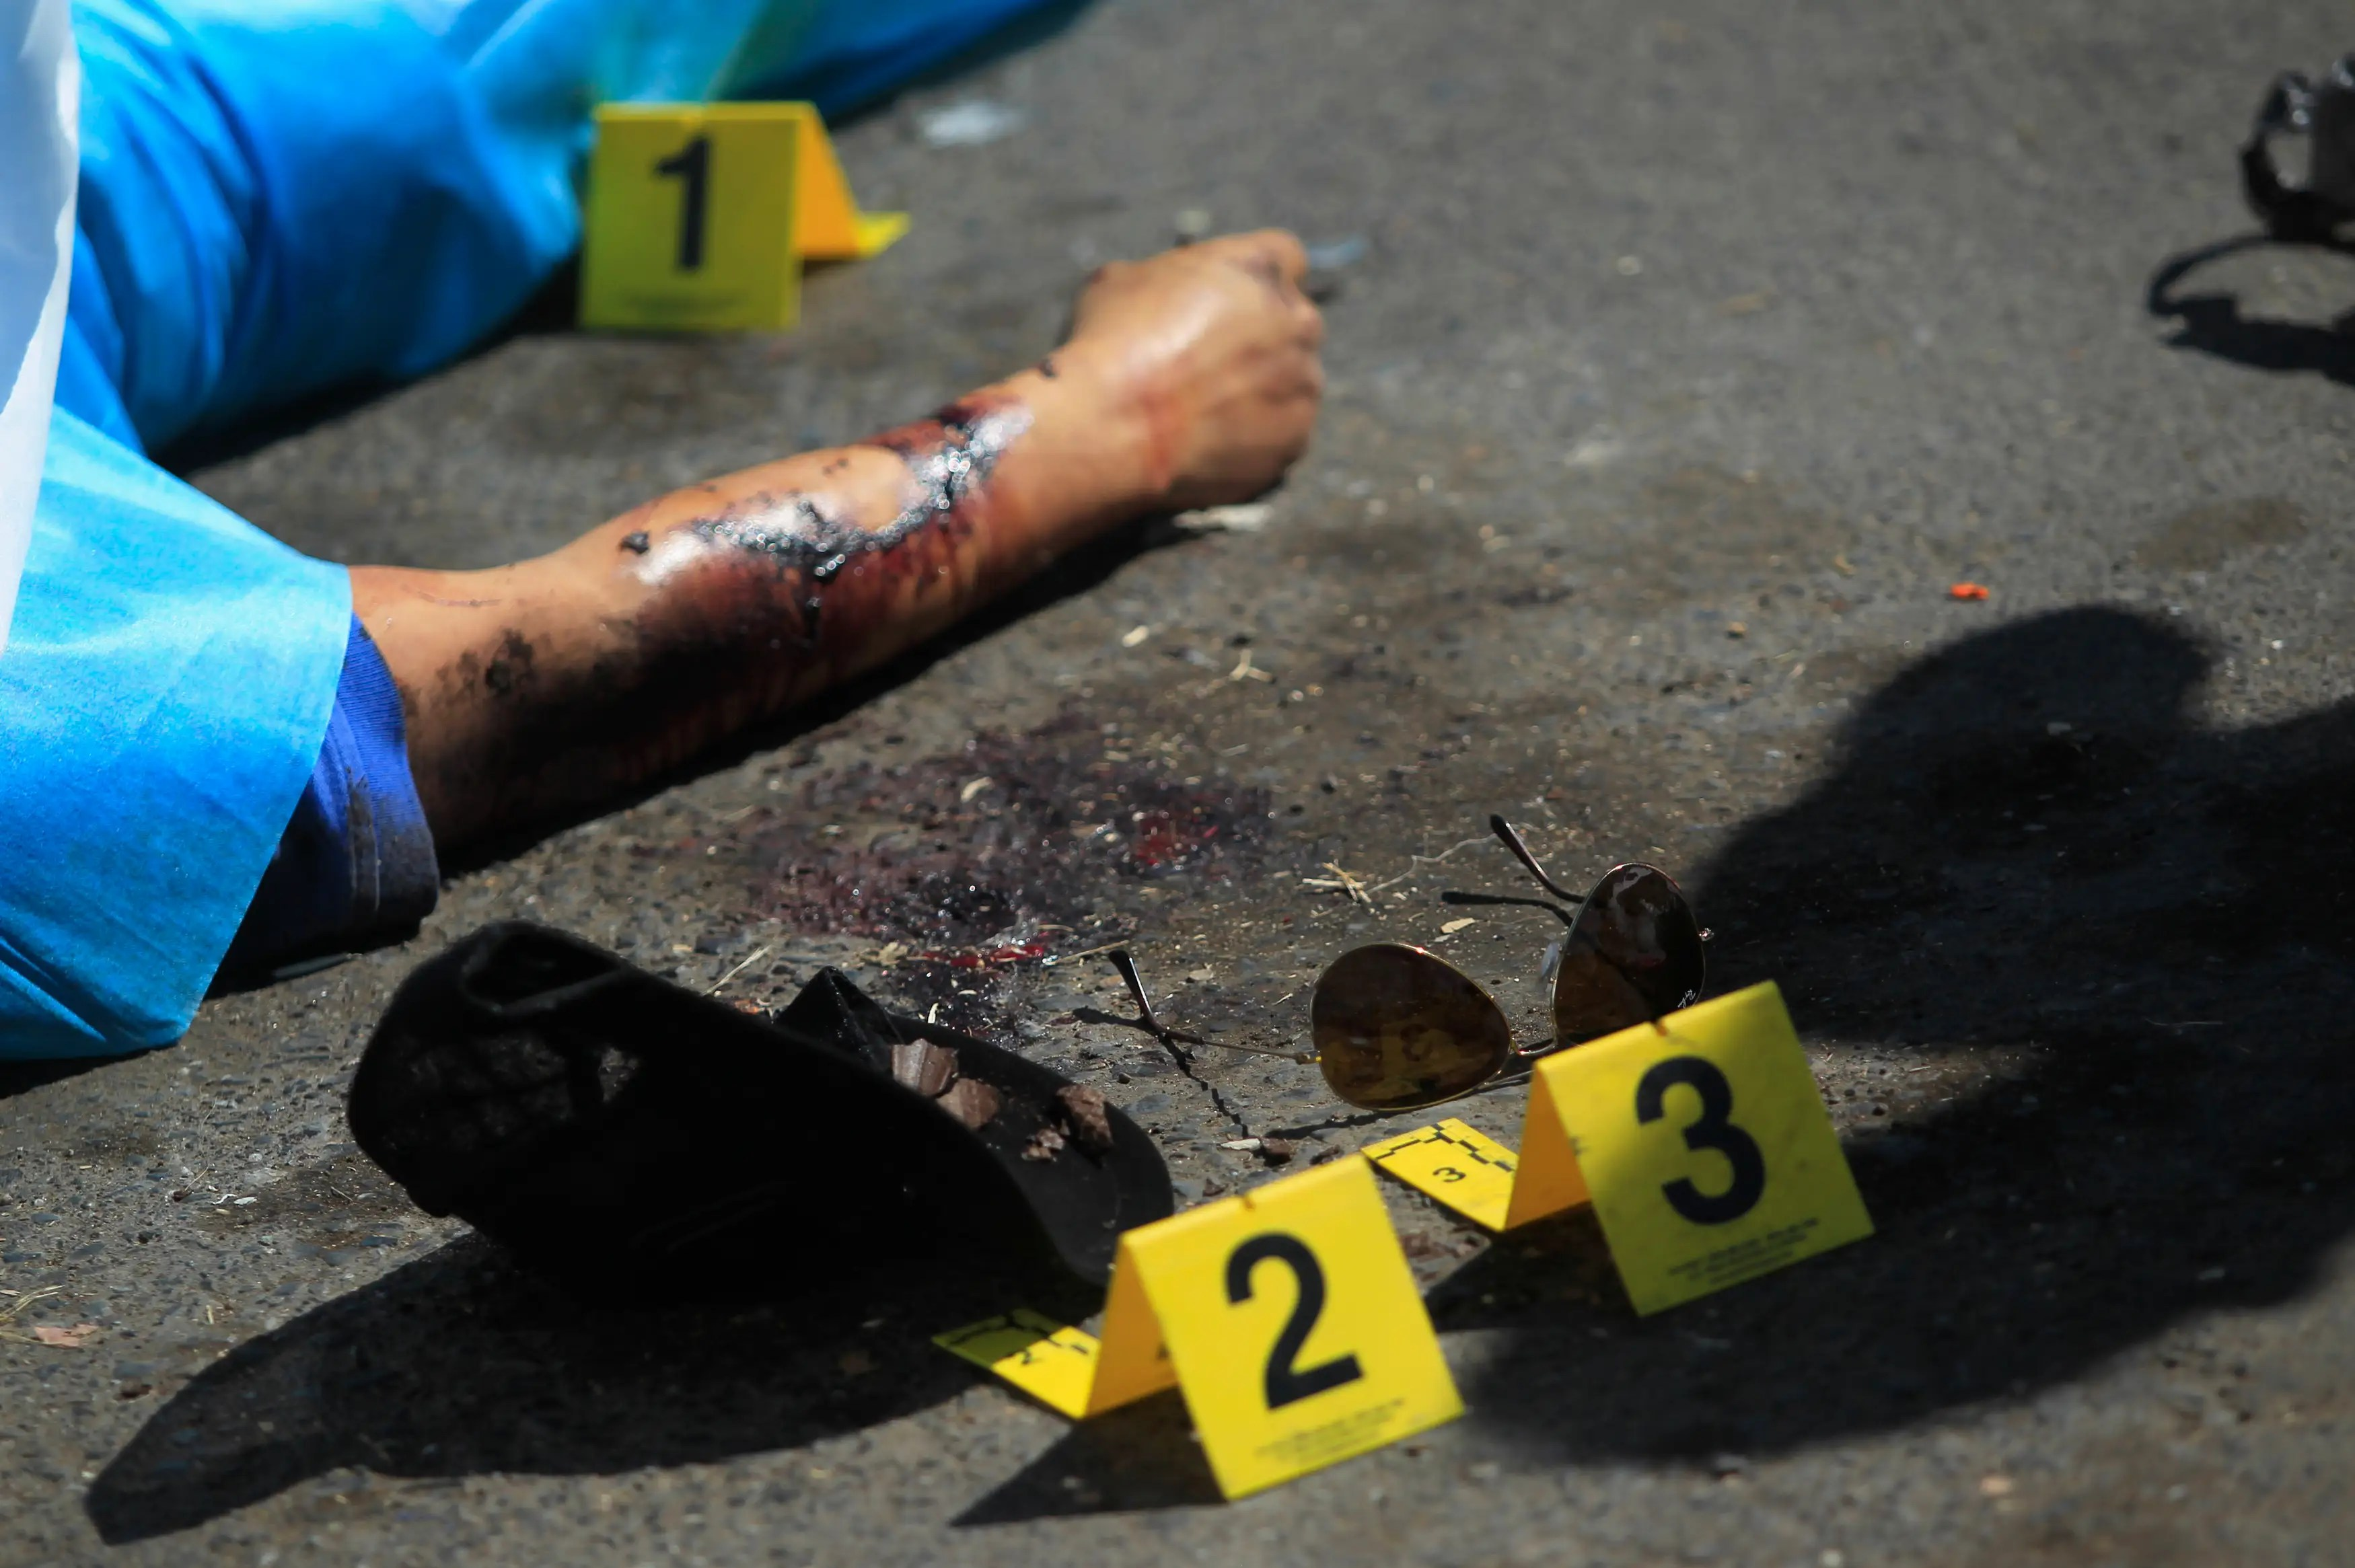 Mexico crime scene blood victim